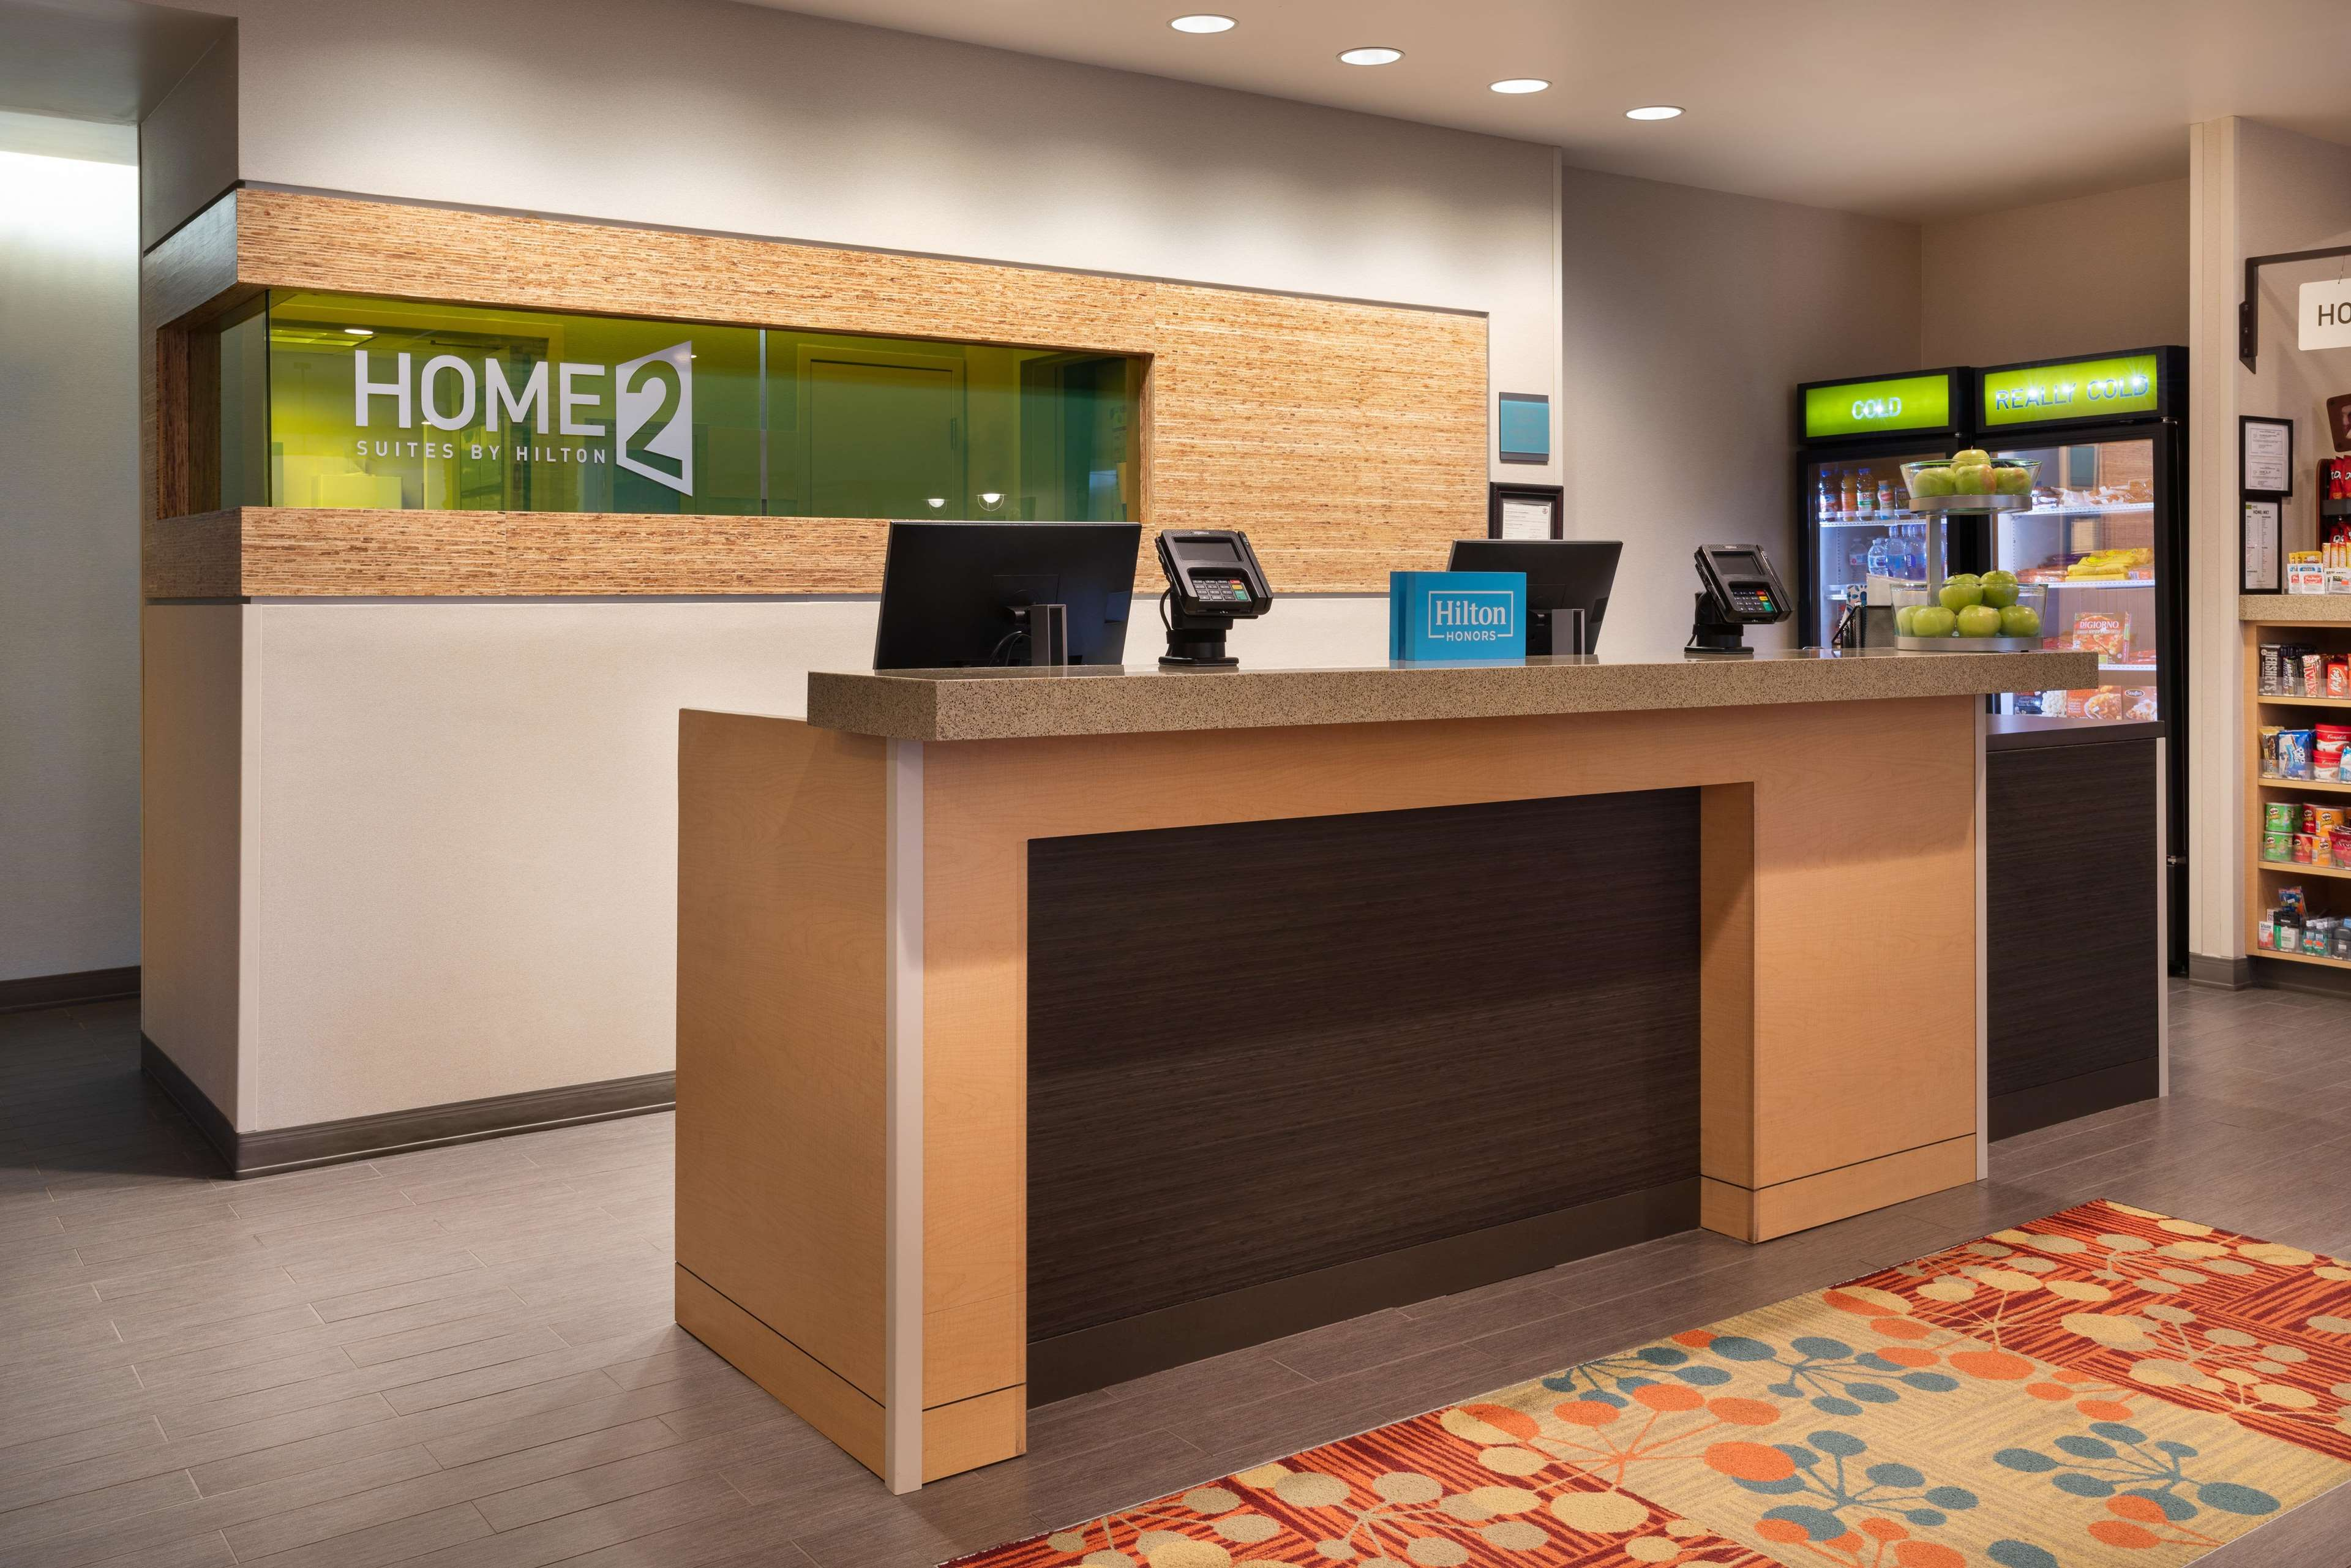 Home2 Suites by Hilton Anchorage/Midtown image 6